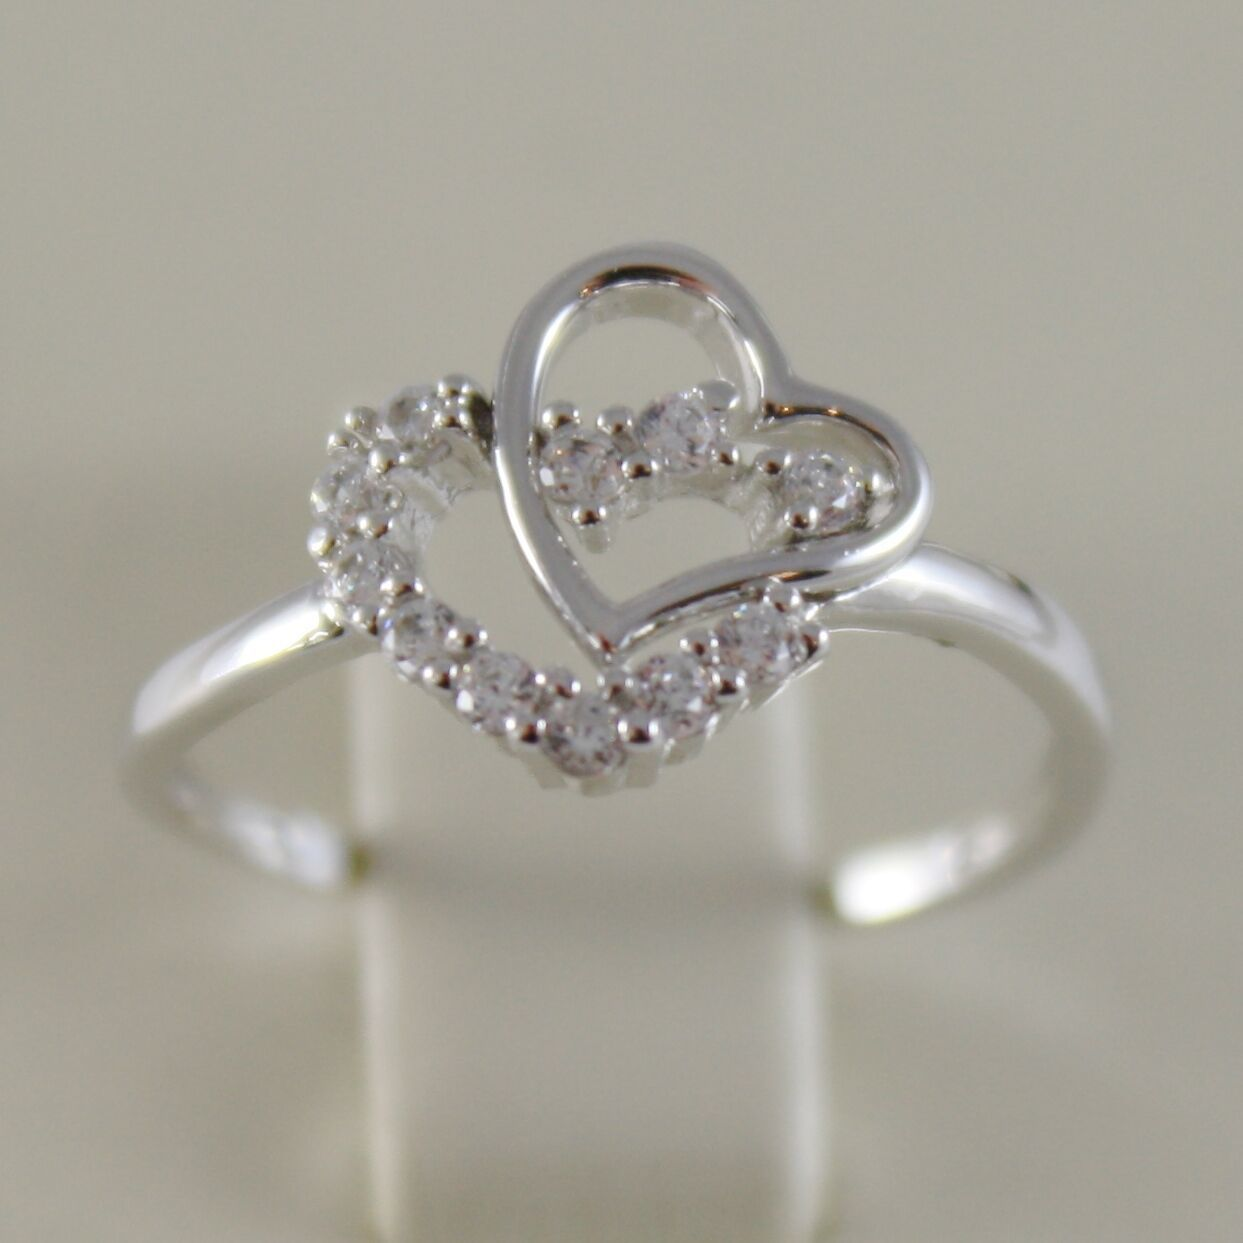 SOLID 18K WHITE GOLD BAND DOUBLE HEART RING LUMINOUS WITH ZIRCONIA MADE IN ITALY